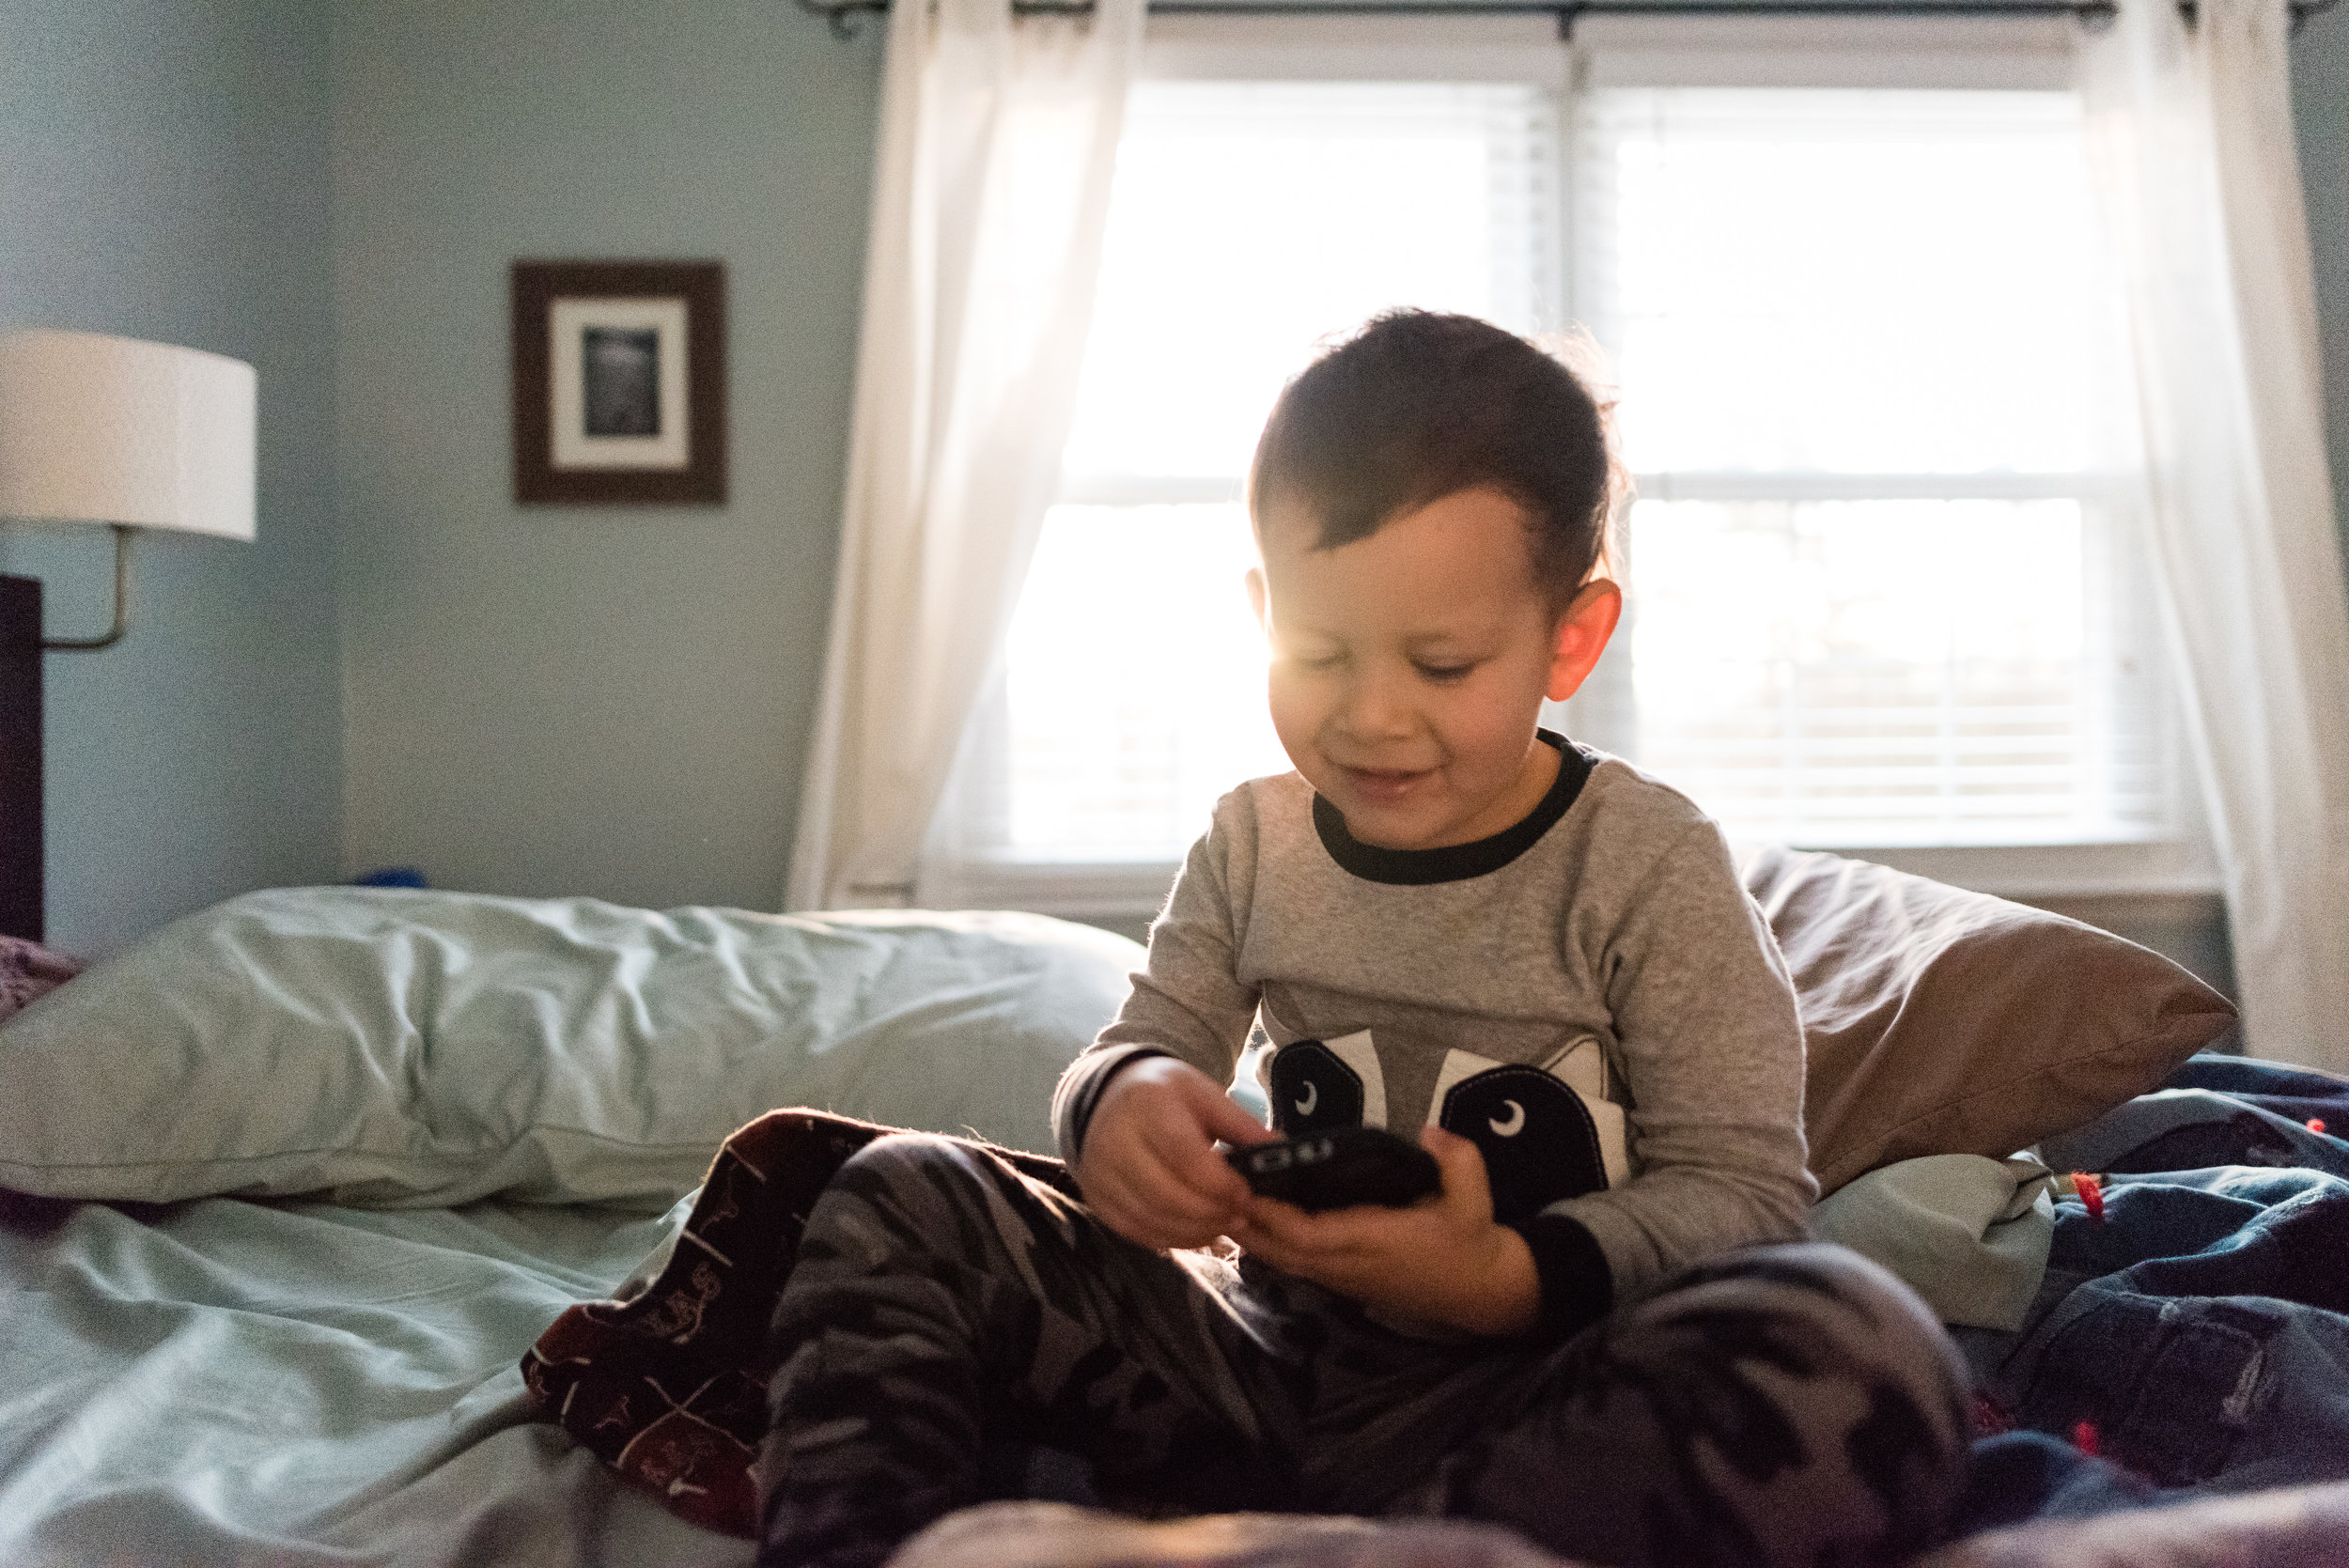 Boy texting on bed by Alexandria, VA Family Photographer Nicole Sanchez